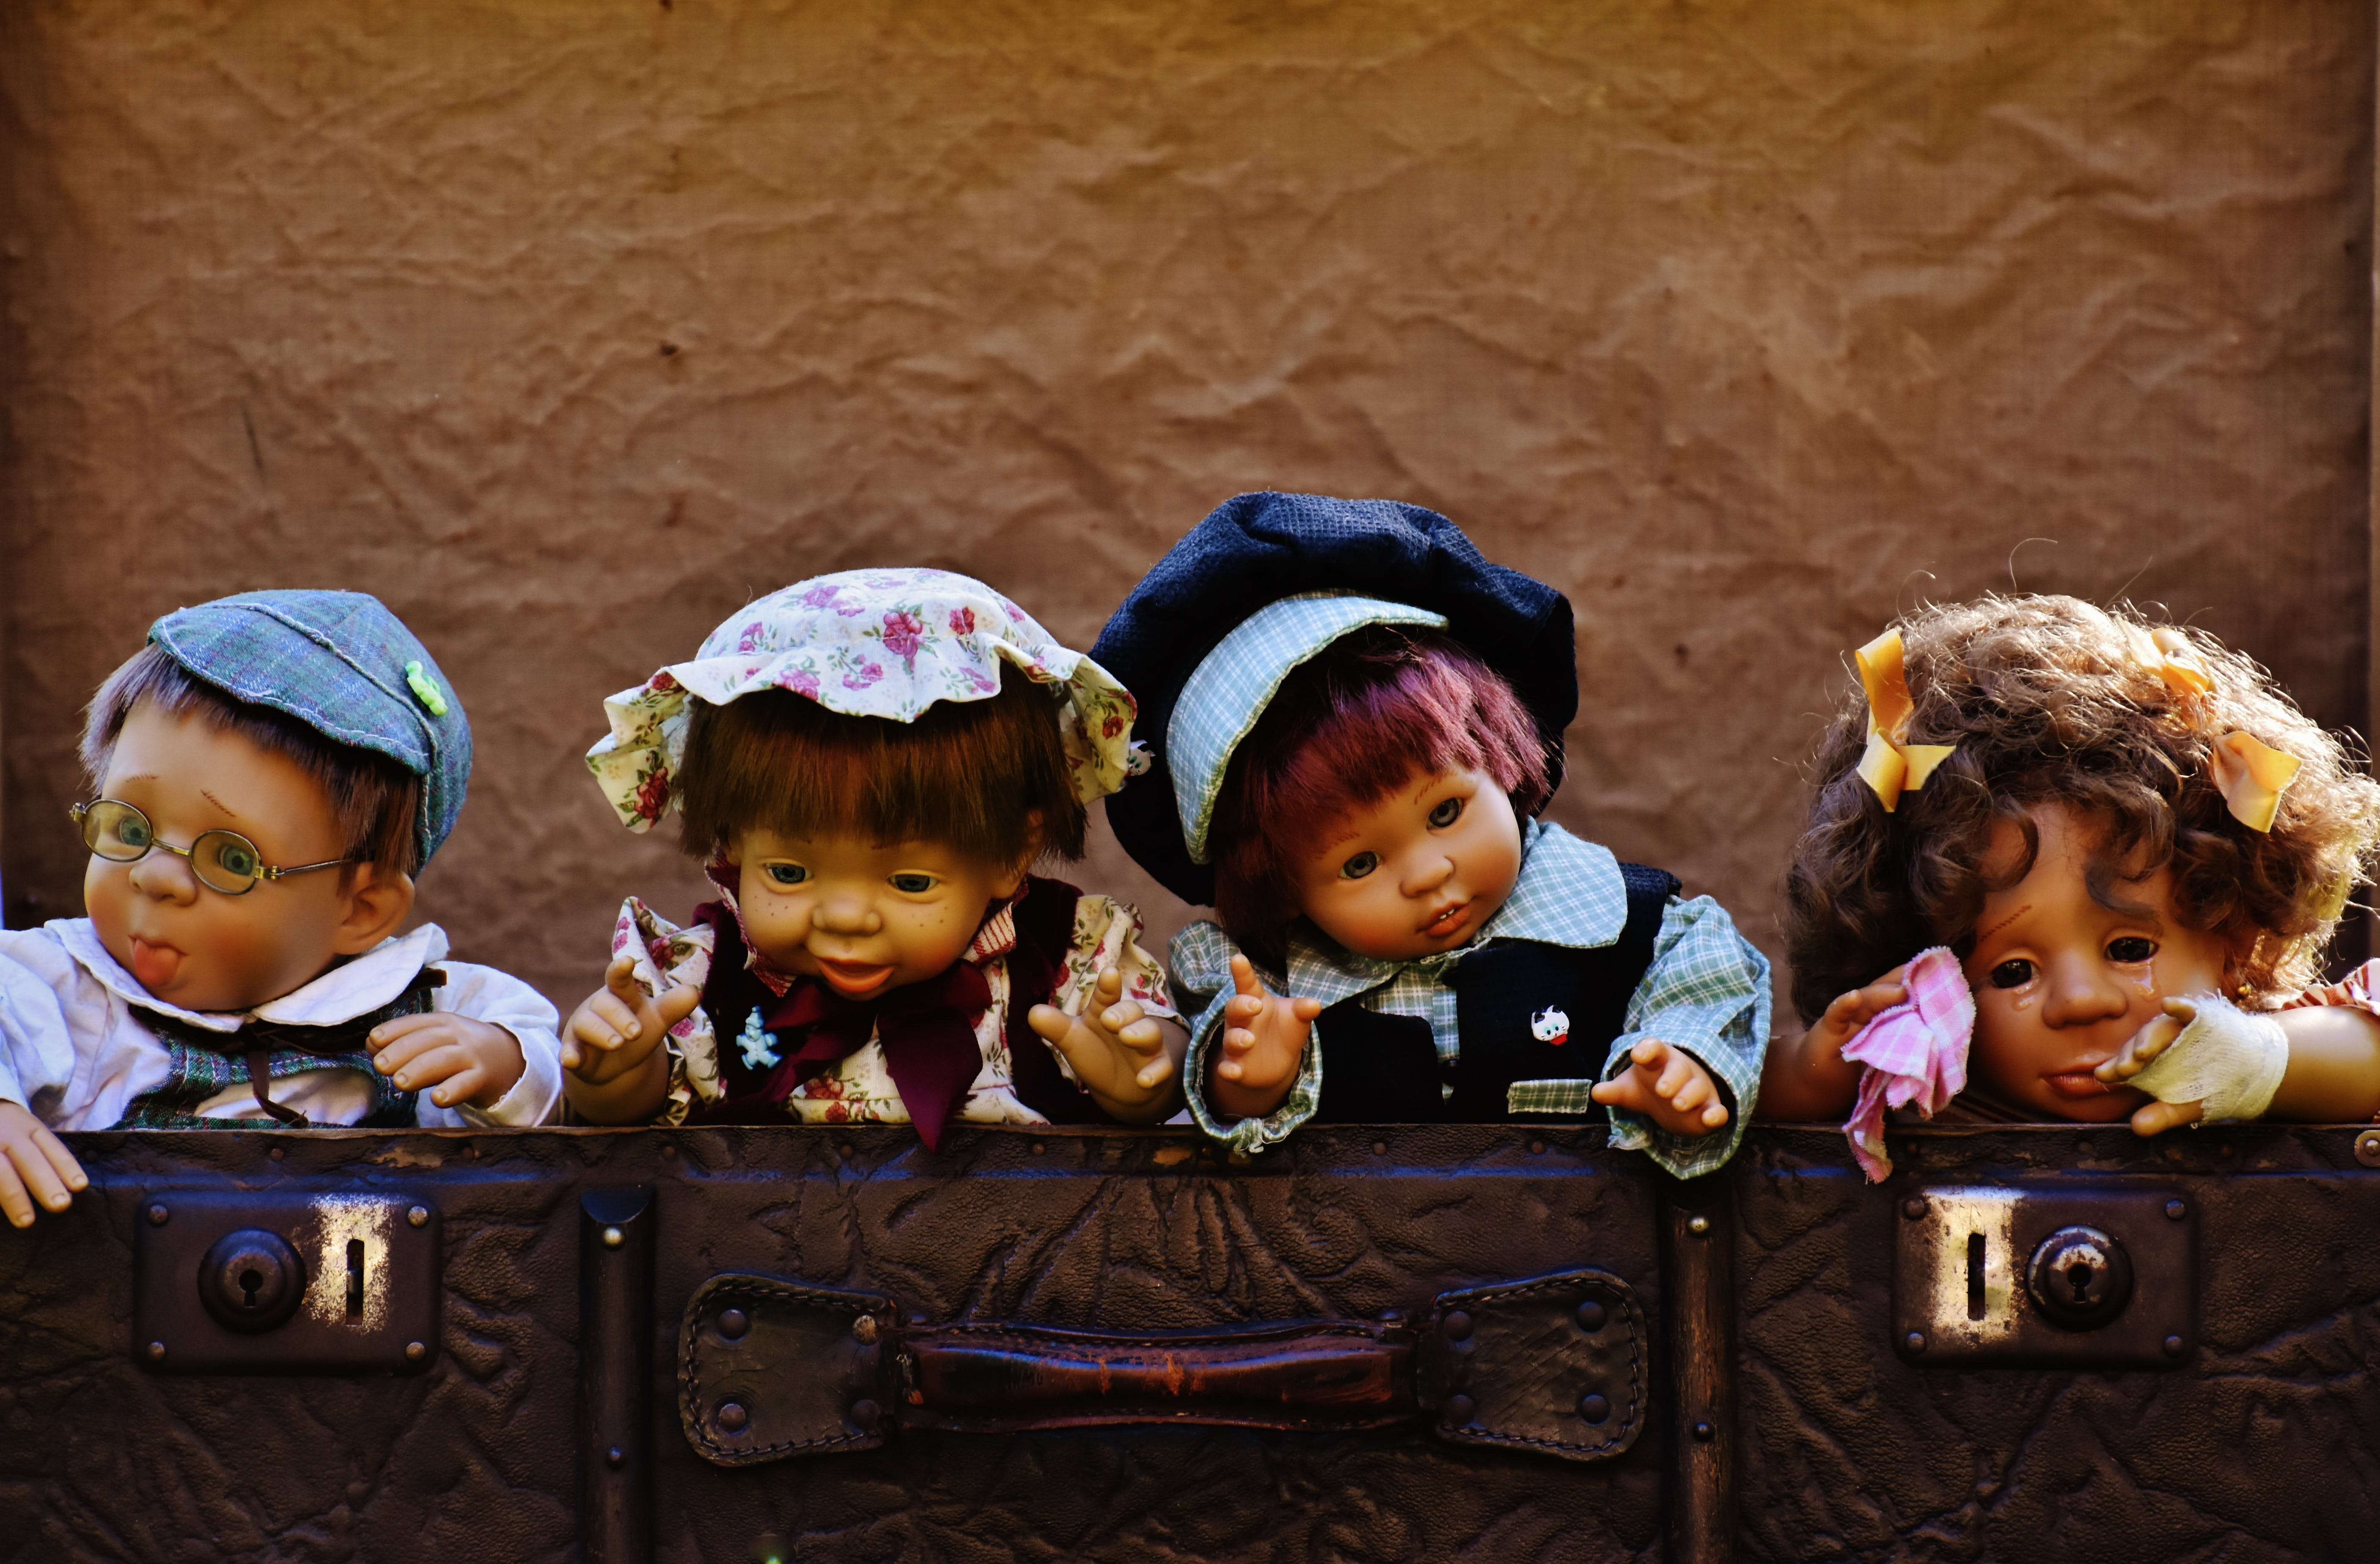 Four Dolls Near Brown Leather Bags